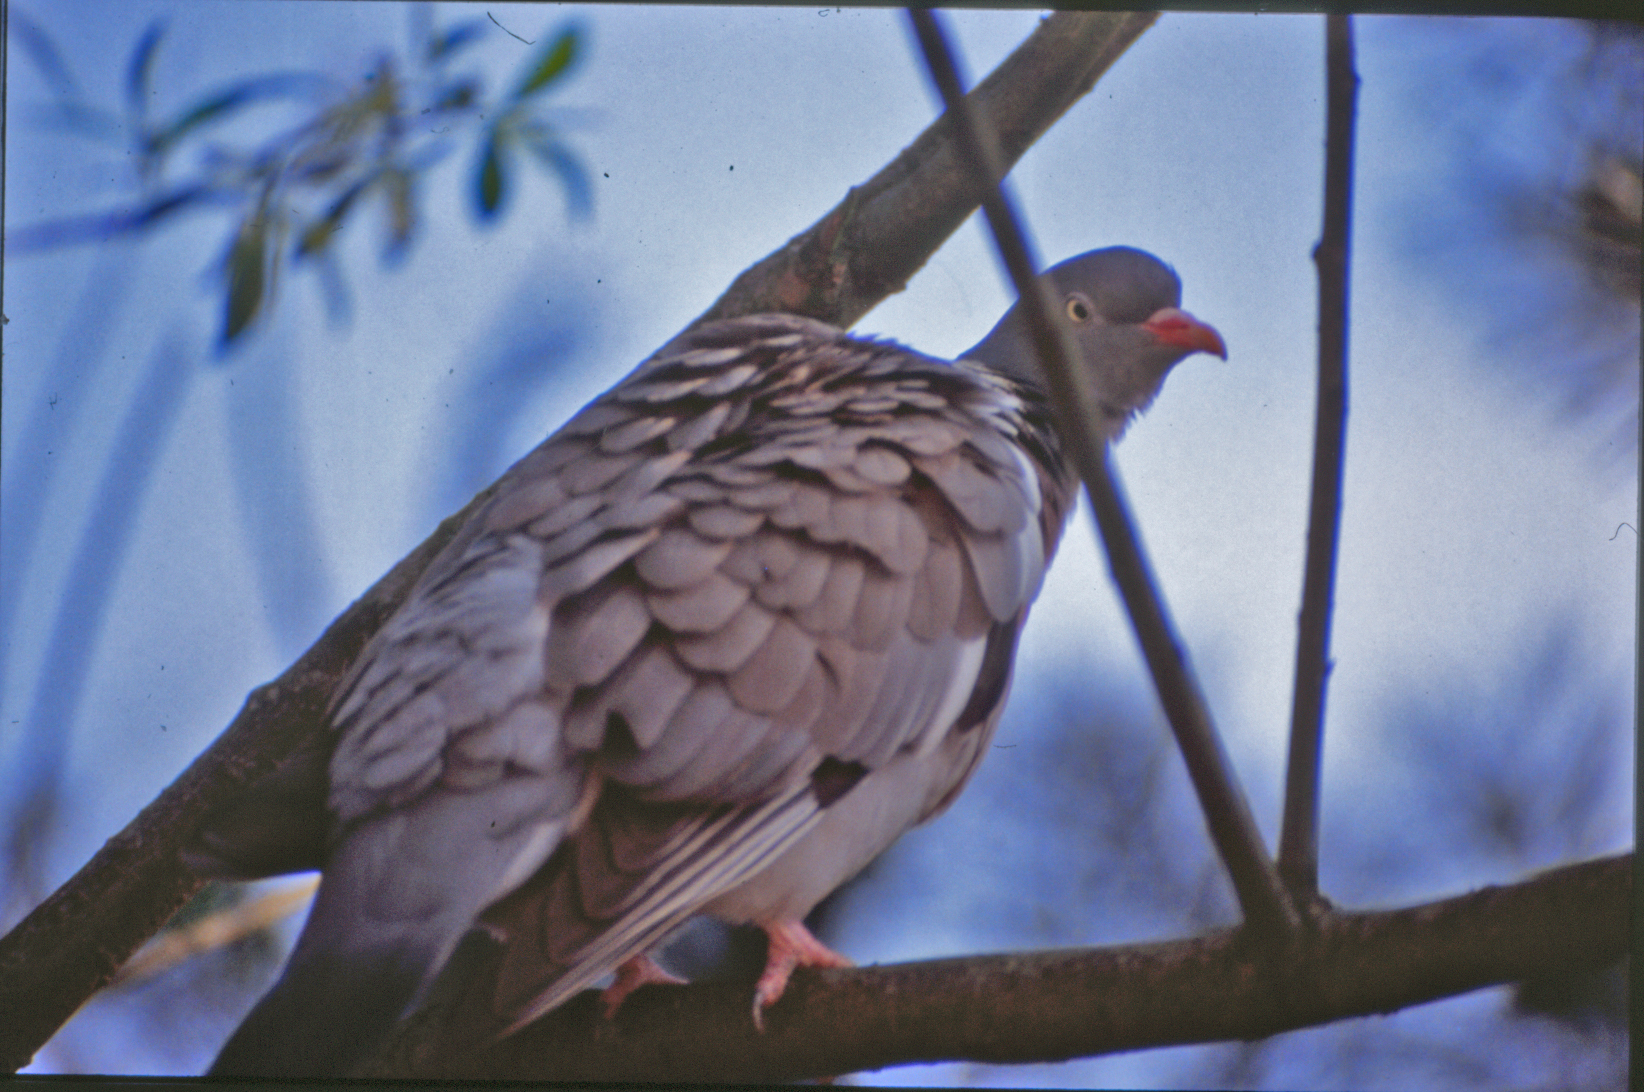 Pigeon, Bird, Branches, Feathers, Tail, HQ Photo